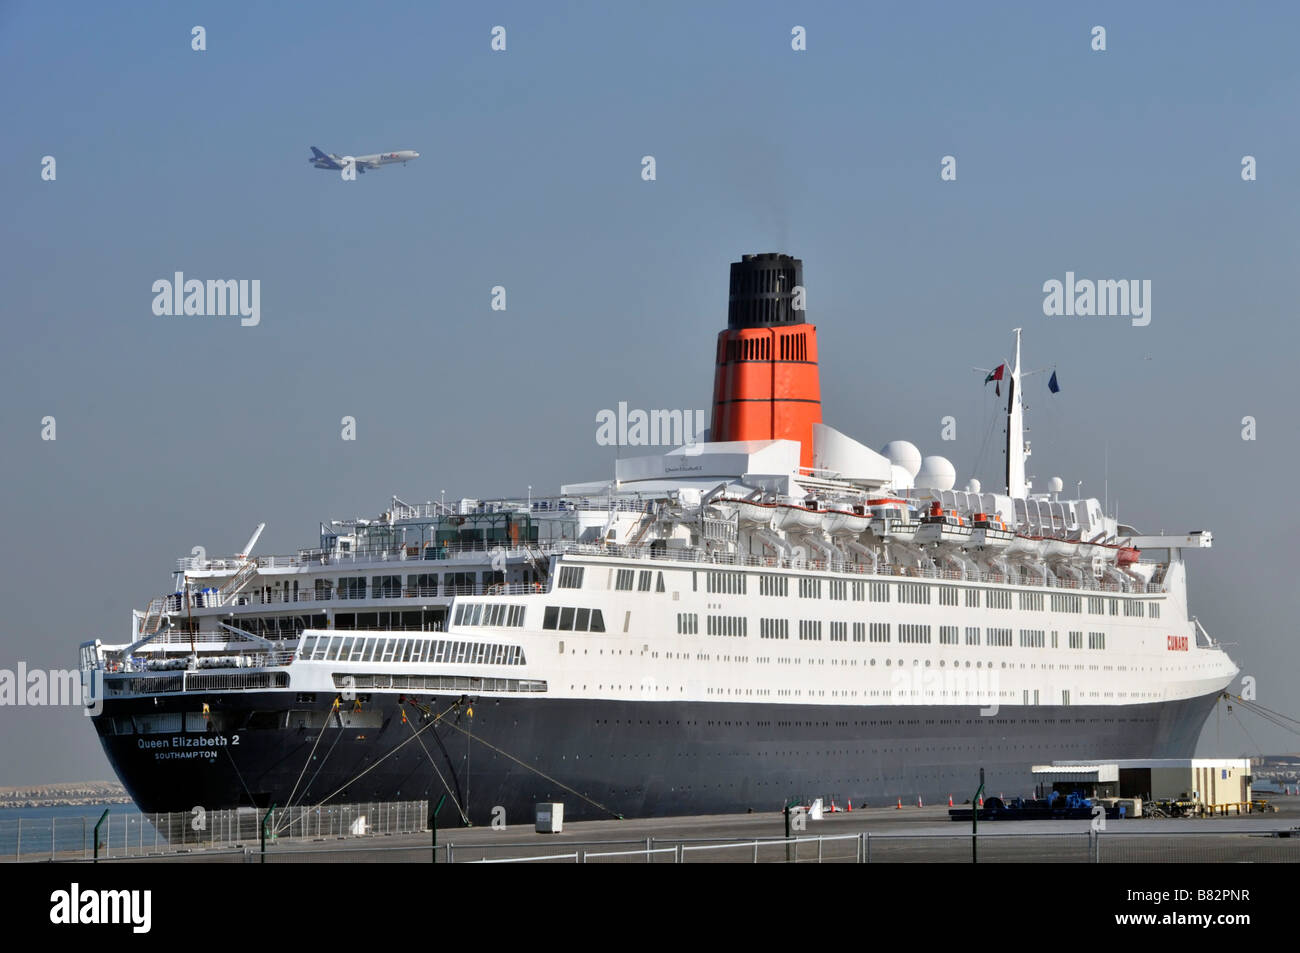 QE2 one time Cunard cruise liner moored at Port Rashid Dubai awaiting conversion to a floating hotel with aircraft - Stock Image